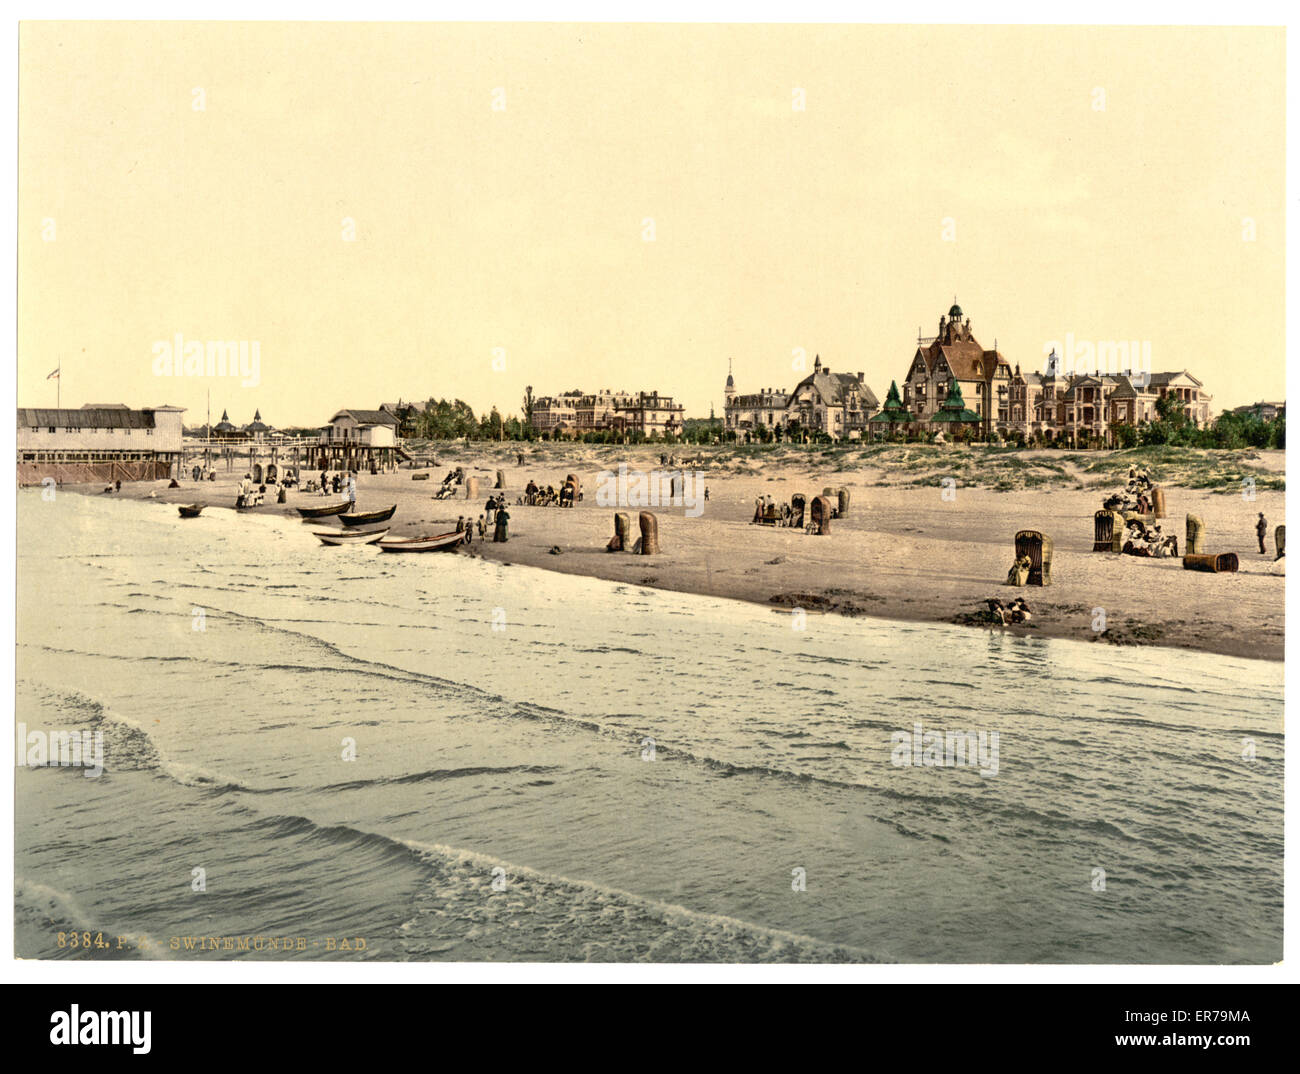 The baths, Swinemunde, Pommeraina, Germany (i.e., Swinoujscie, Poland). Date between ca. 1890 and ca. 1900. Stock Photo